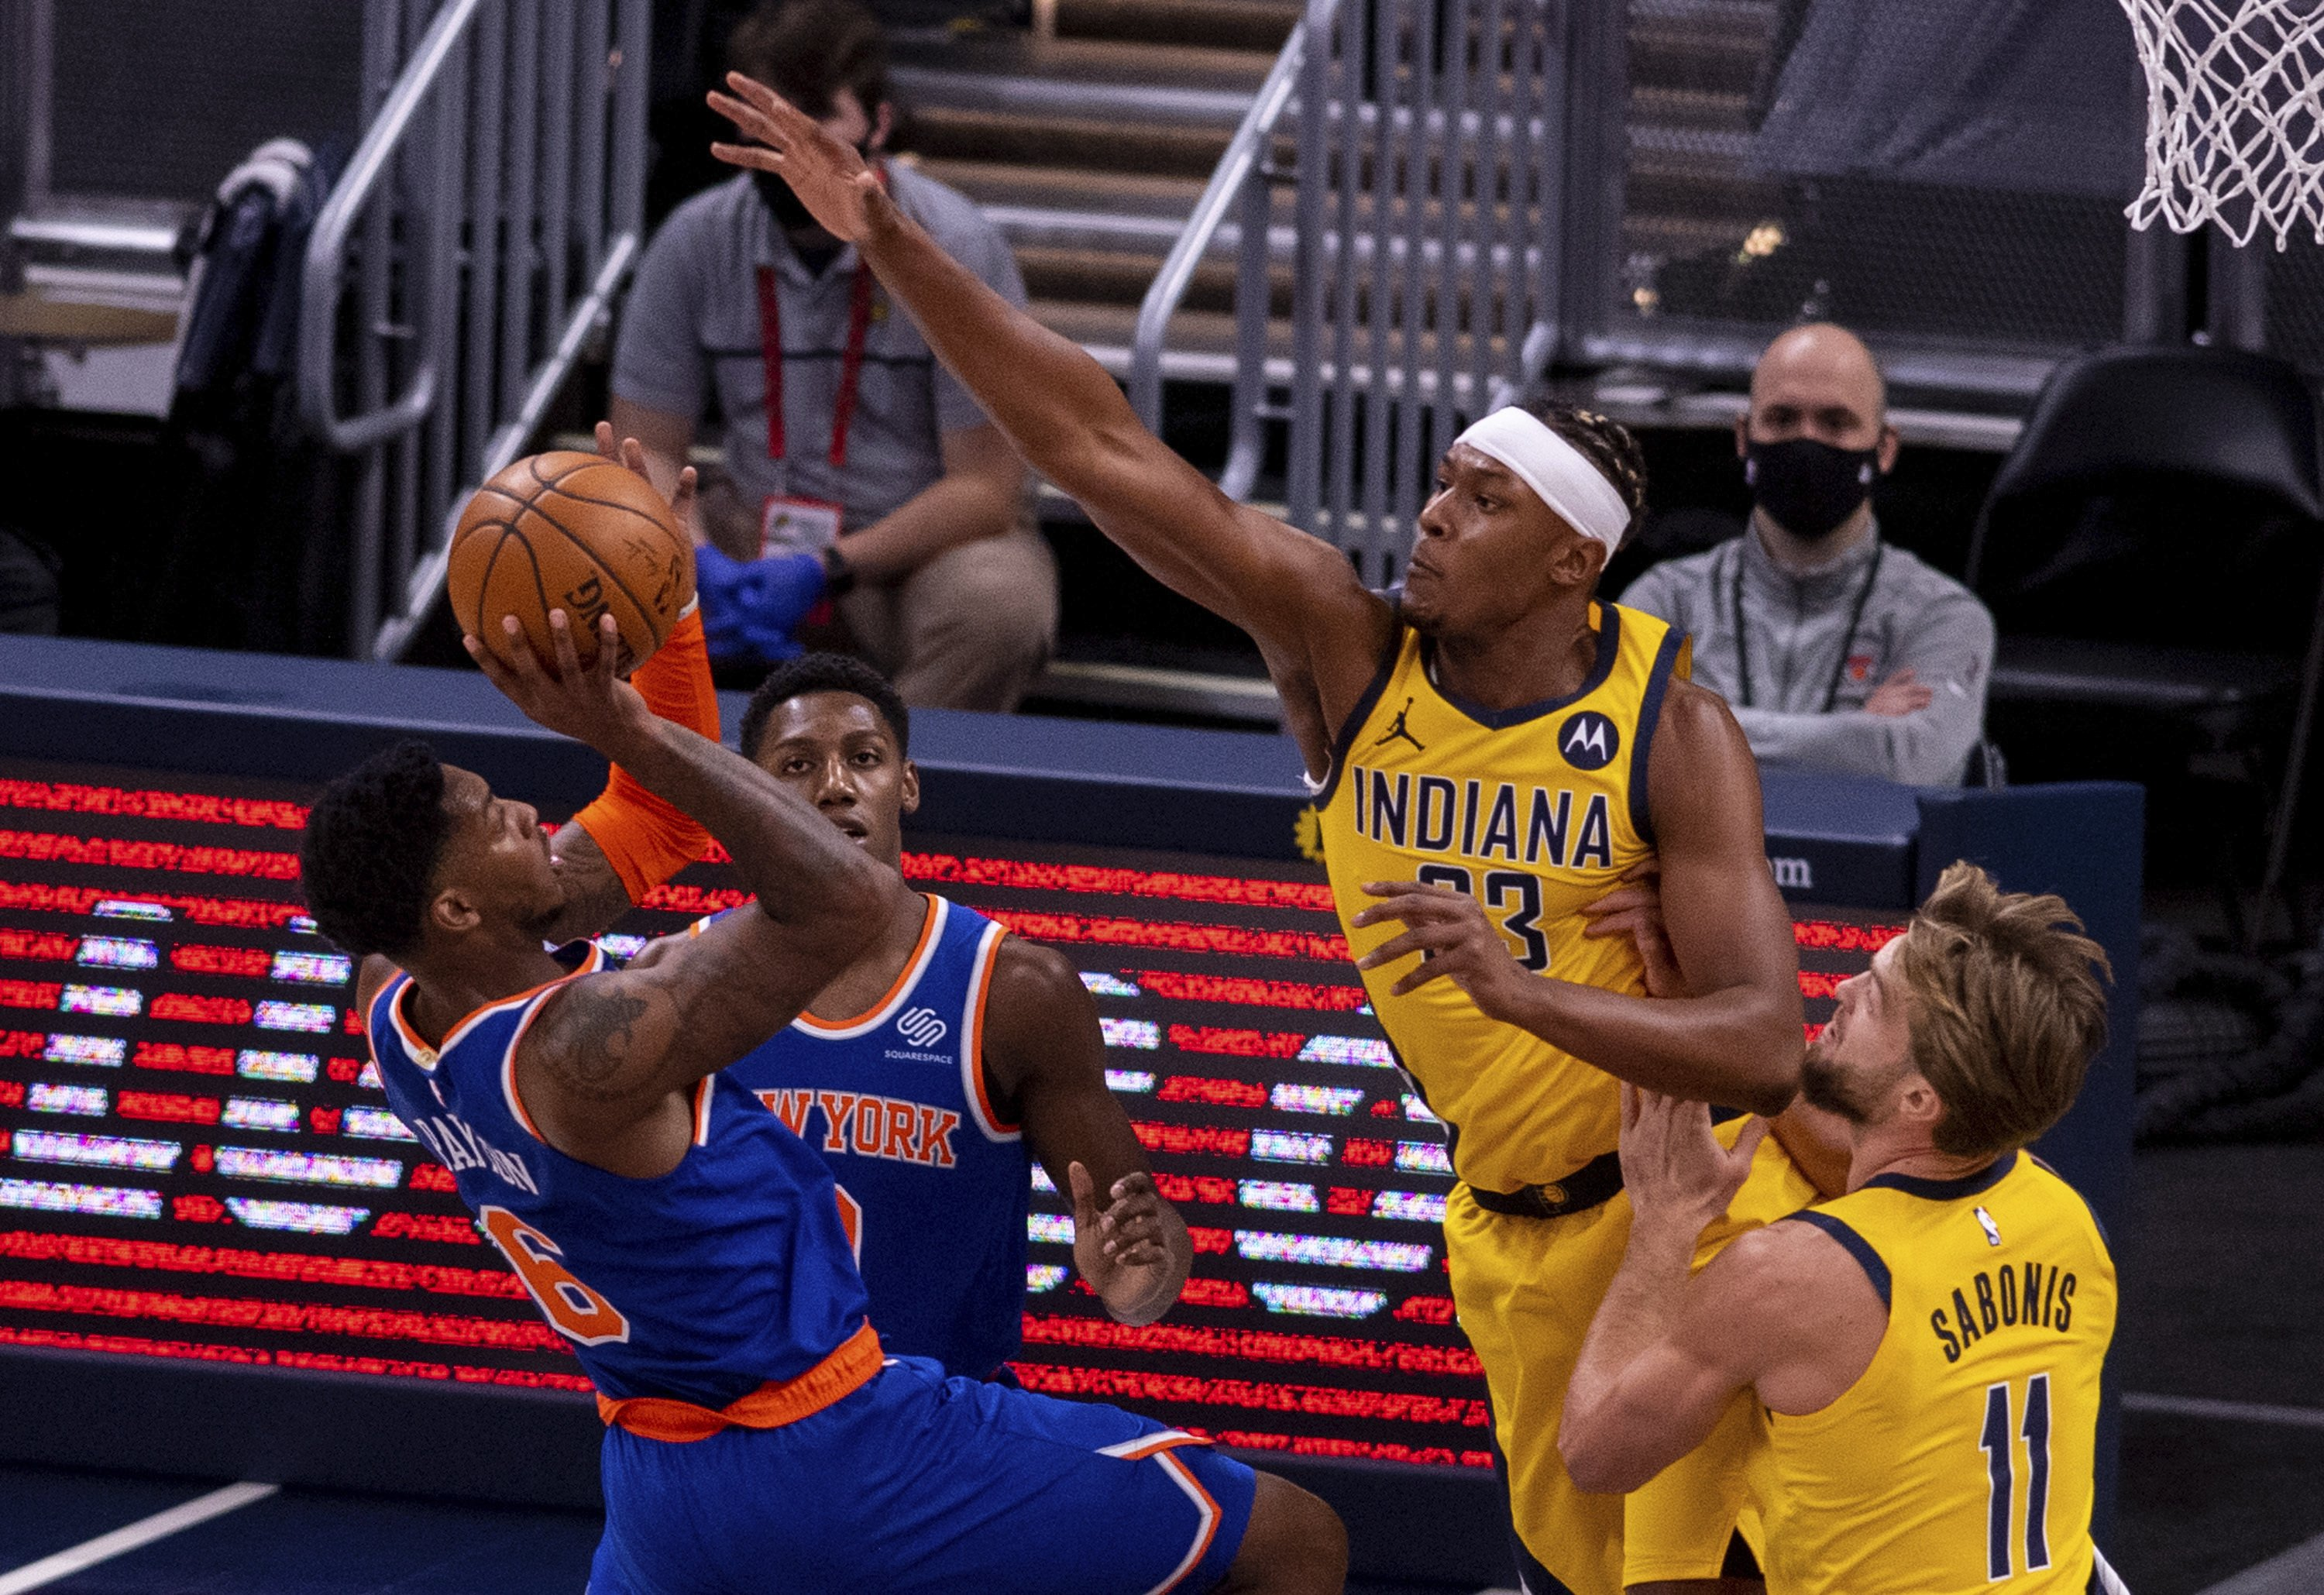 Rivers helps Knicks rally late to get past Pacers 106-102